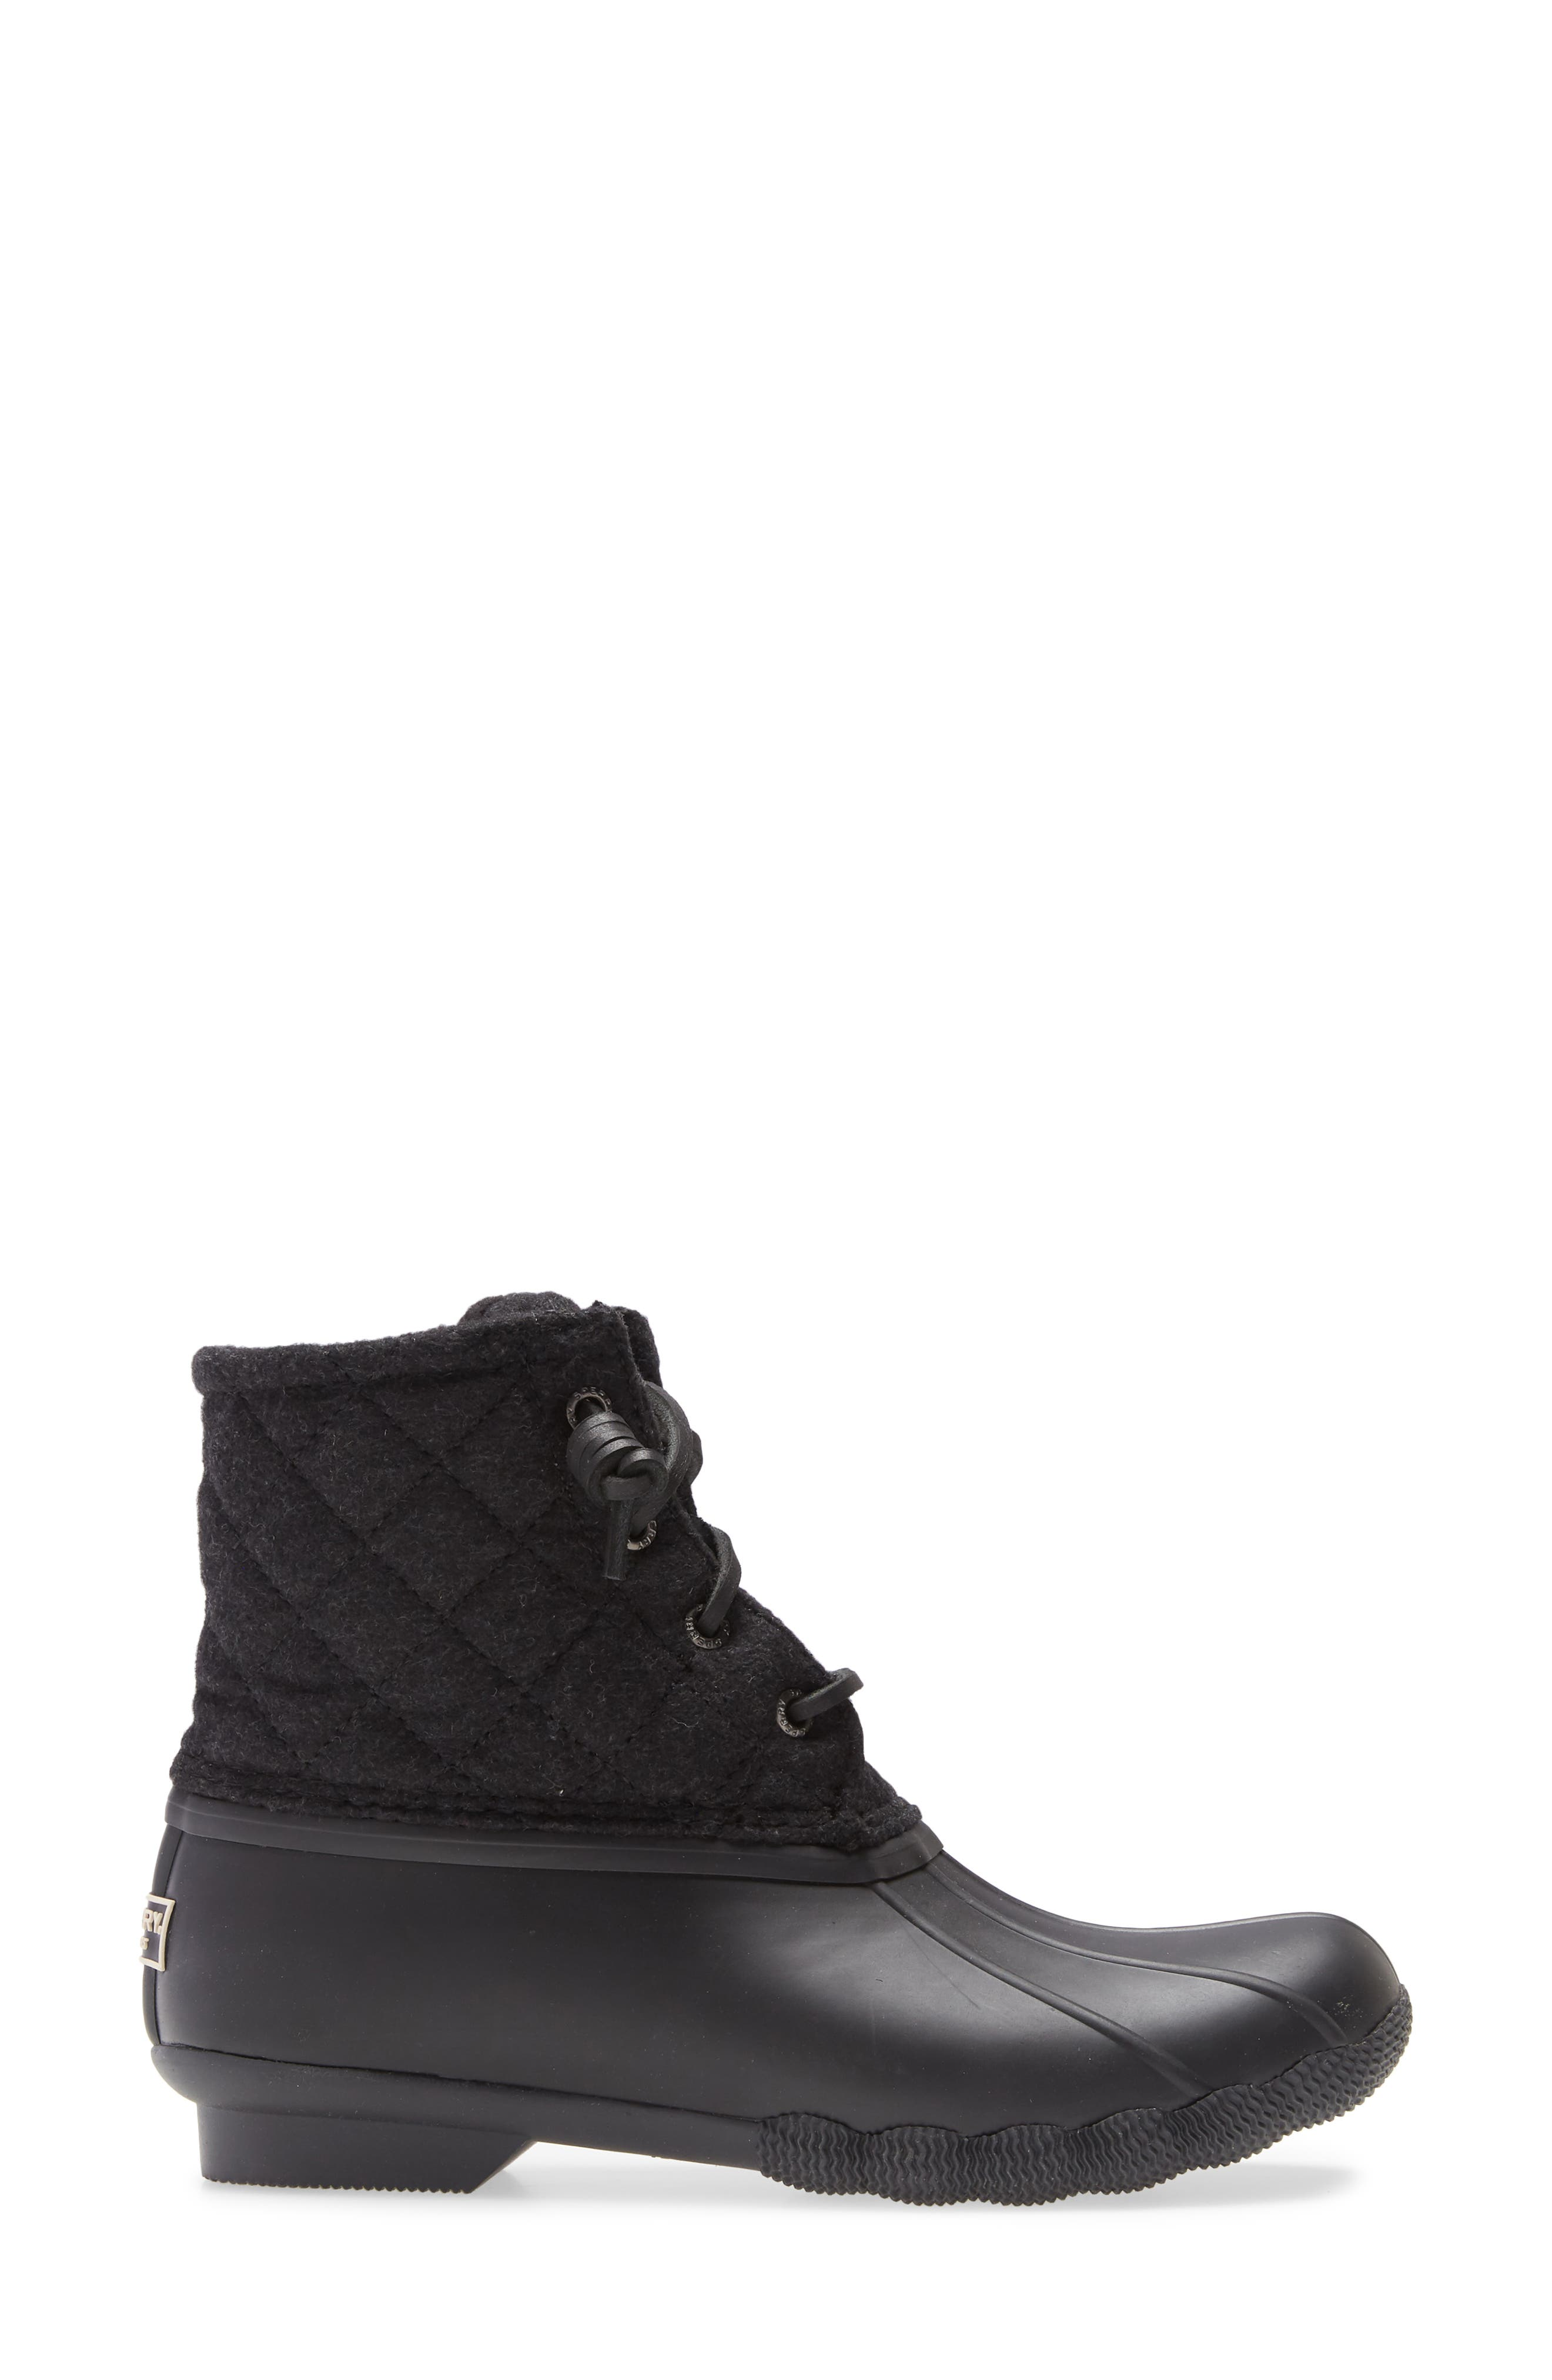 Sperry Saltwater Quilted Wool Duck Boot